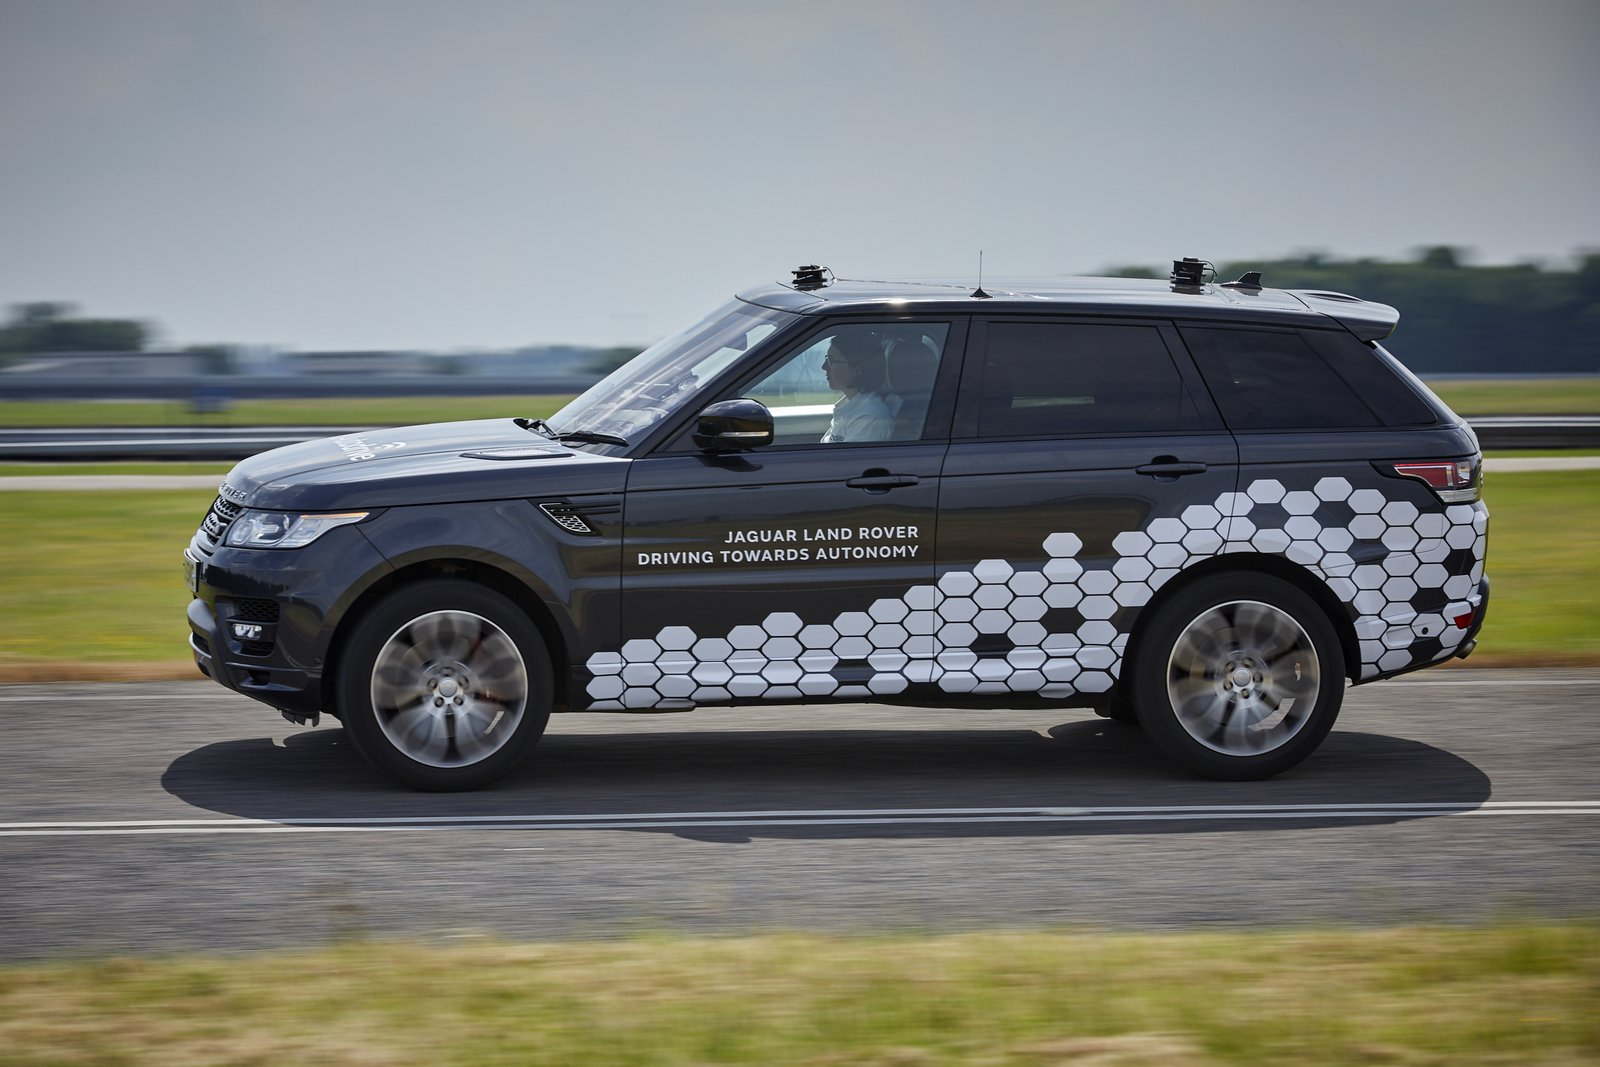 Jaguar Land Rover to Focus on Off-Road Autonomous-Driving System with Project Cortex